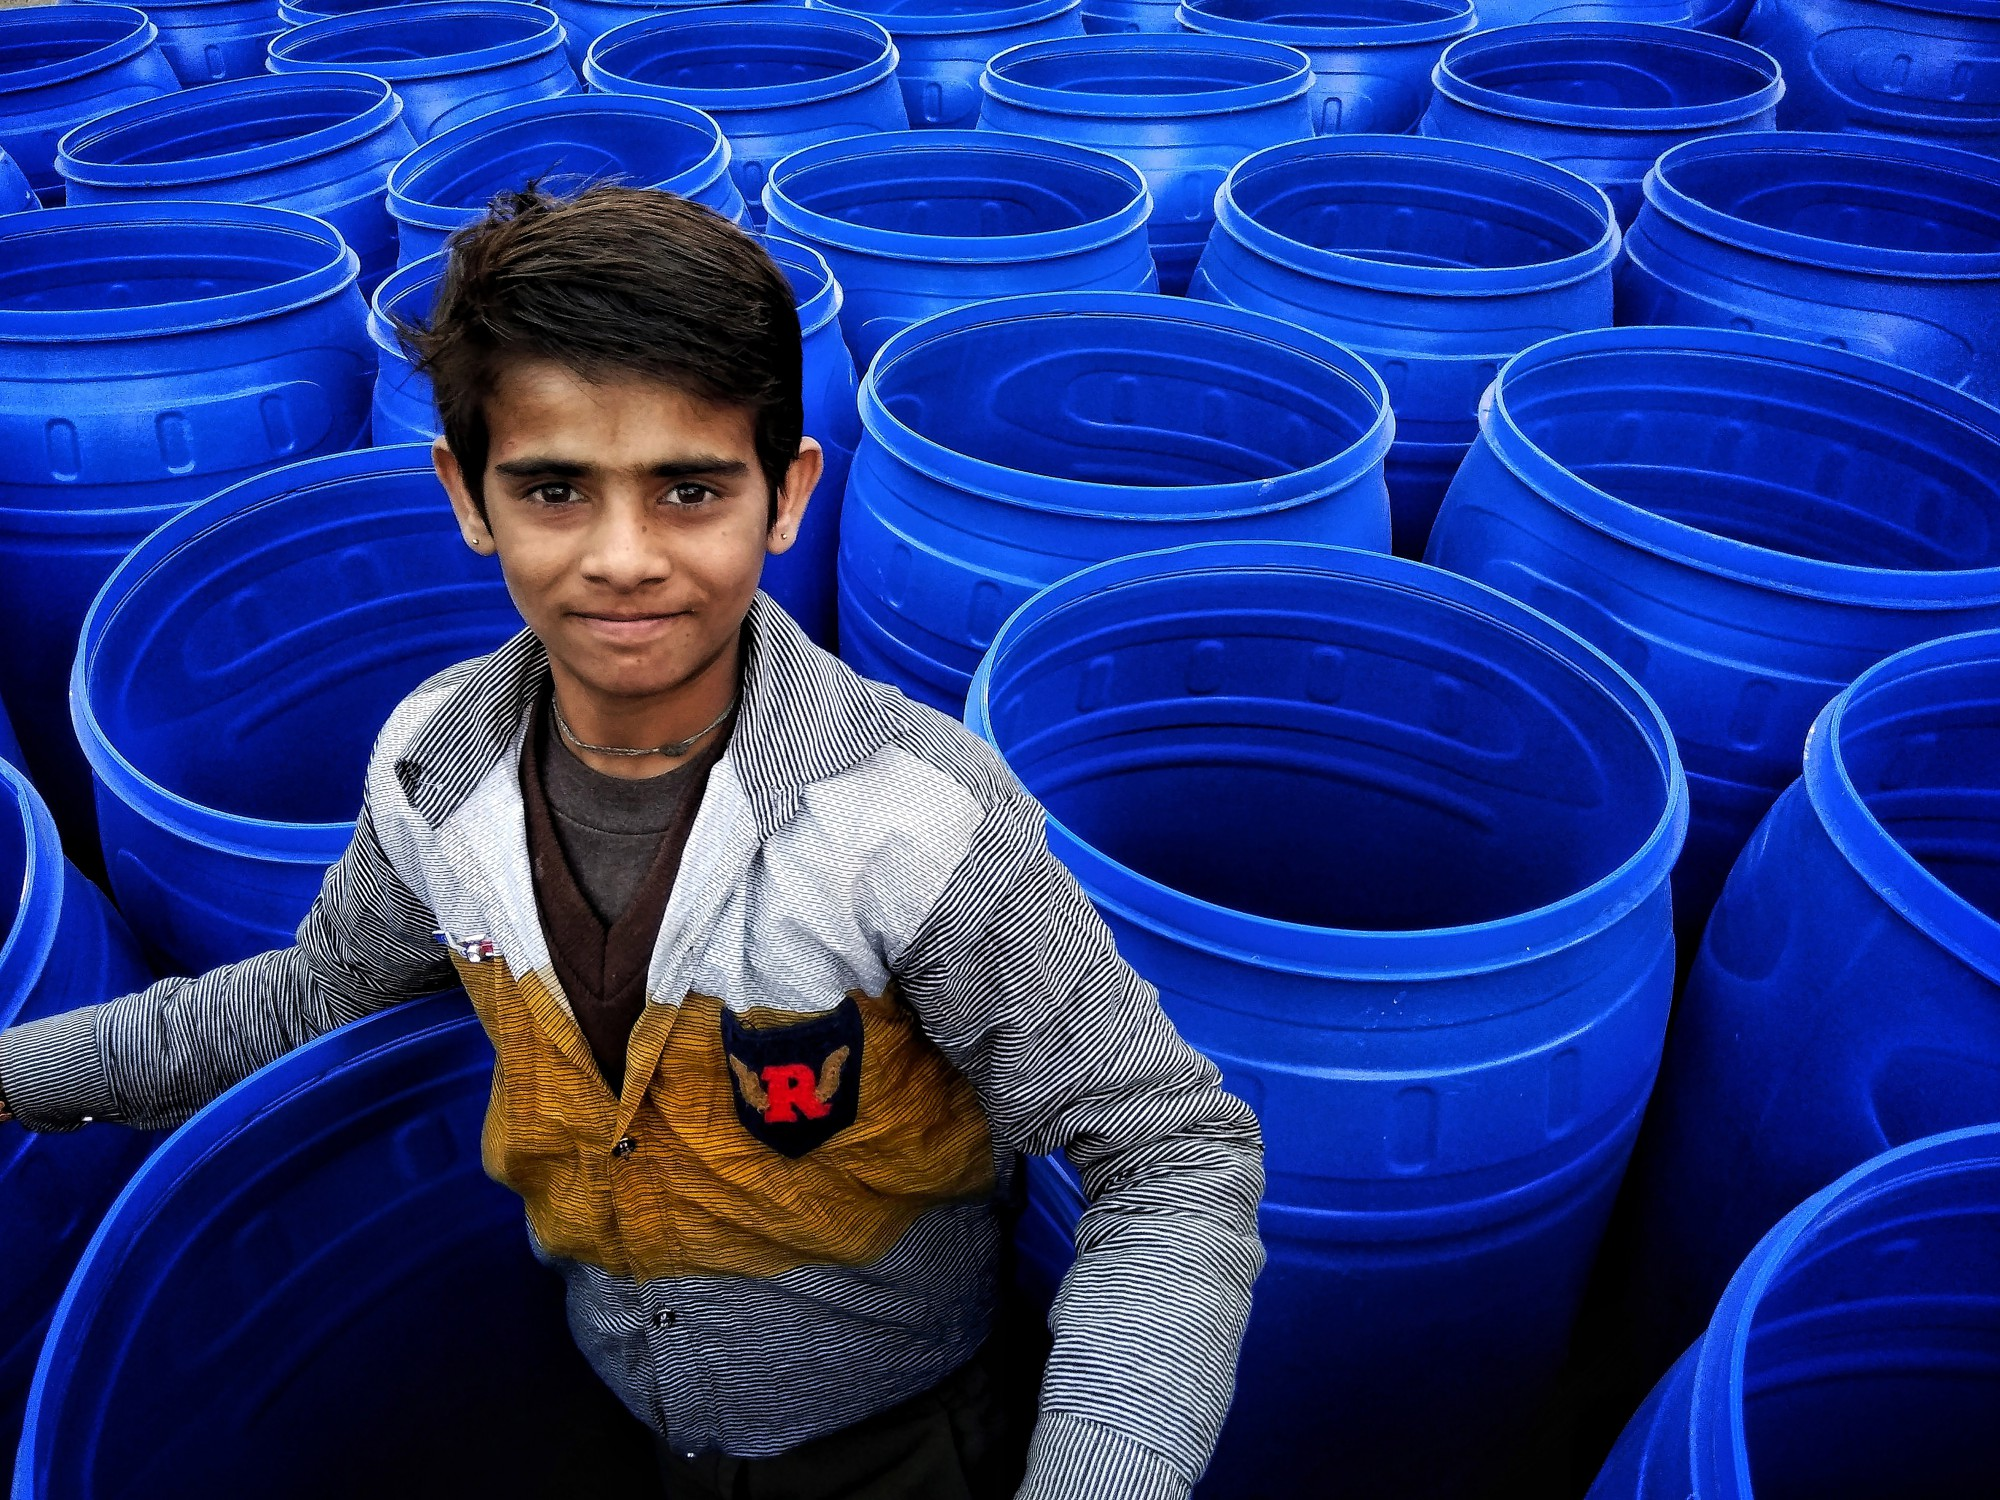 Every year, thousands of pilgrims and families travel to Gangasagar each year to take a dip in the holy water of the river Ganga. Numerous arrangements have been made by the authorities like transit camps for people to stay and take shelter. Here the young boy was found amidst the blue water drums,while his family was busy with the tradional rituals.